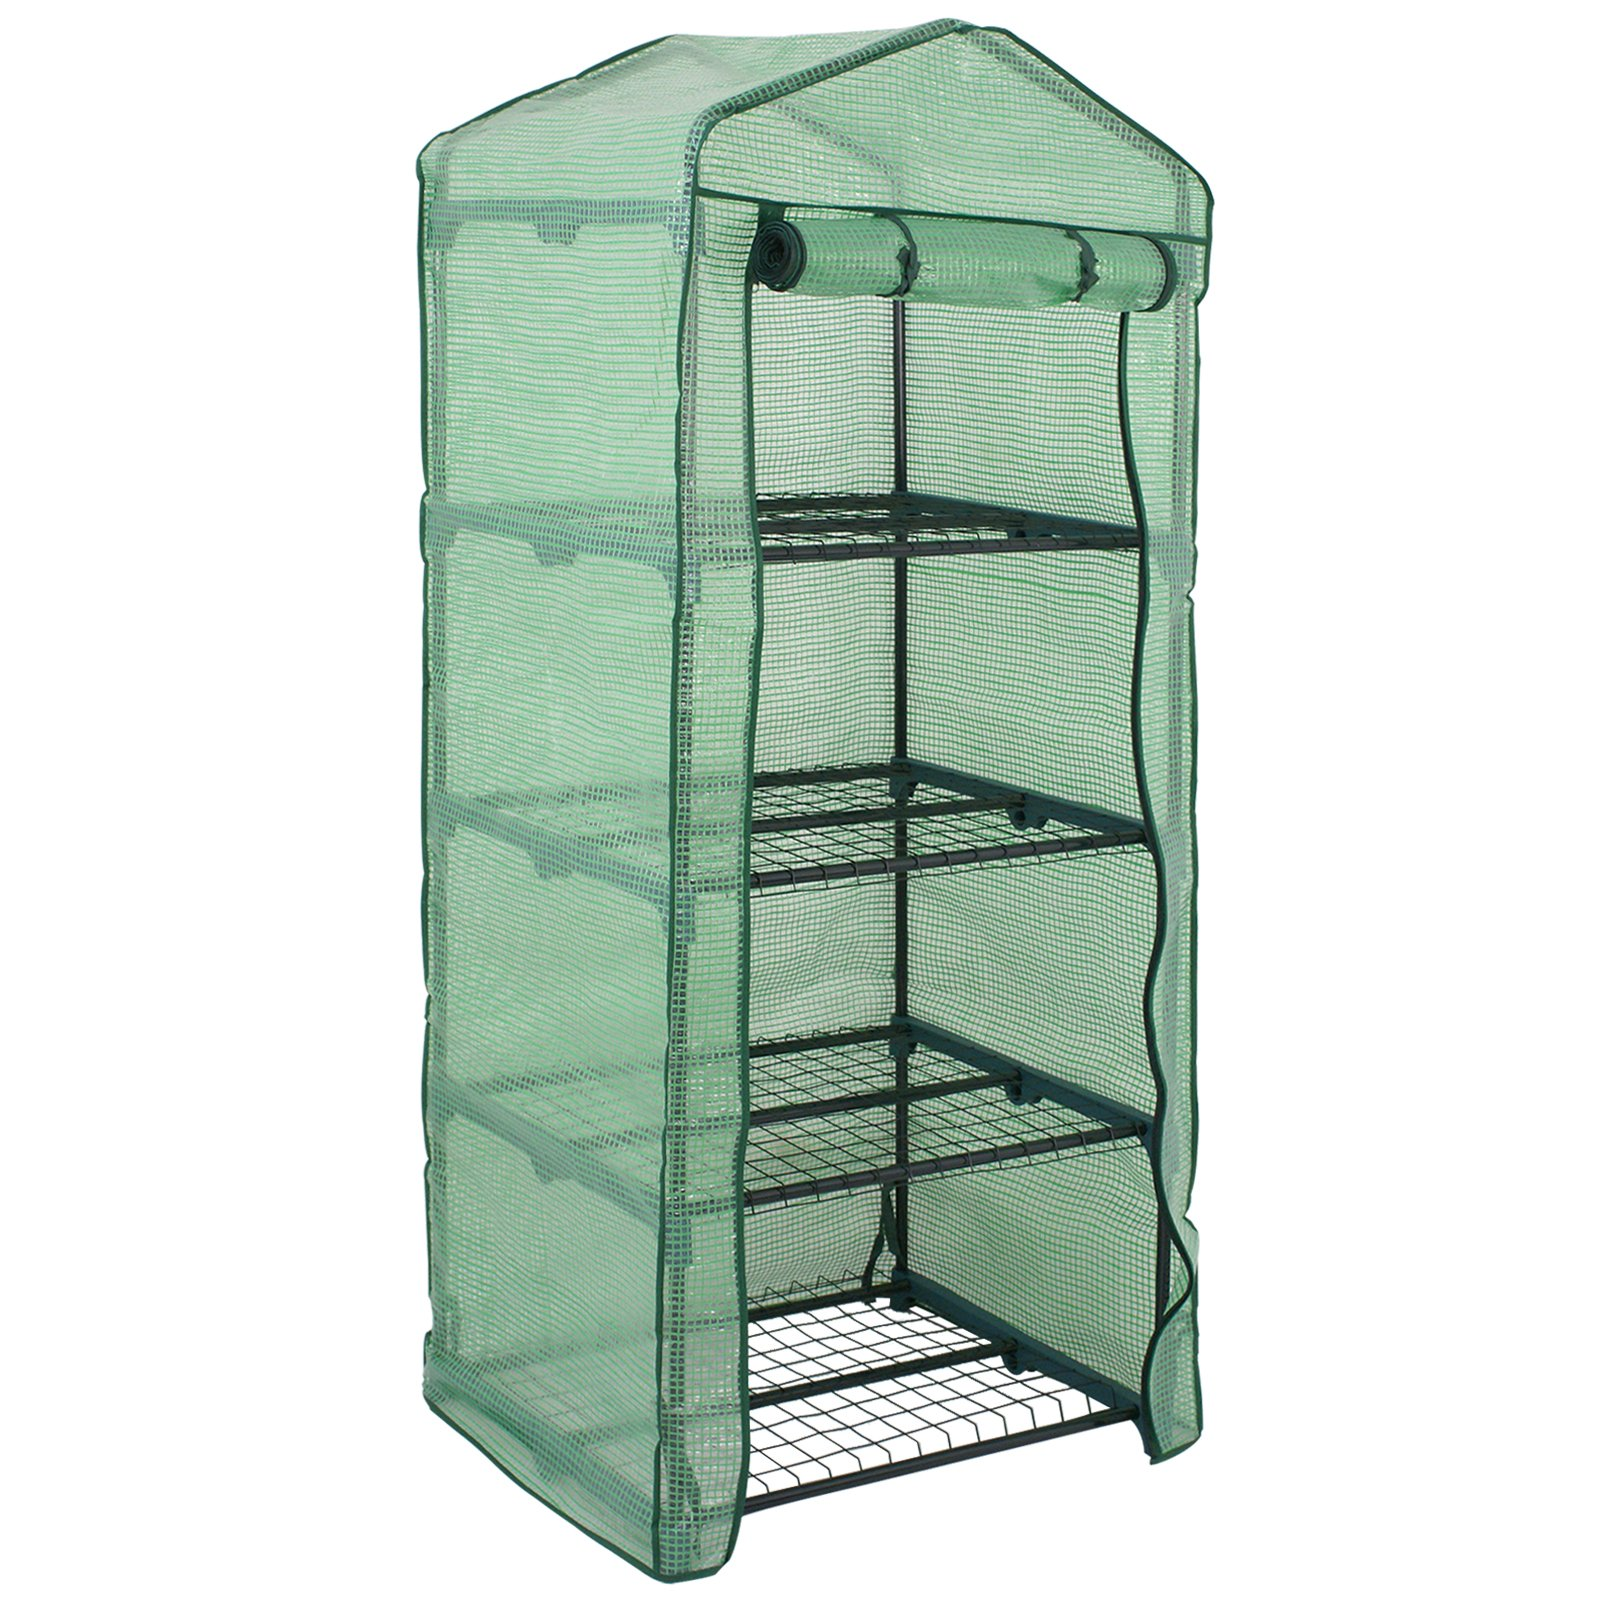 Smartxchoices 4 tier Mini Portable Plants GreenHouse w/Shelves Green Plants House (Green)